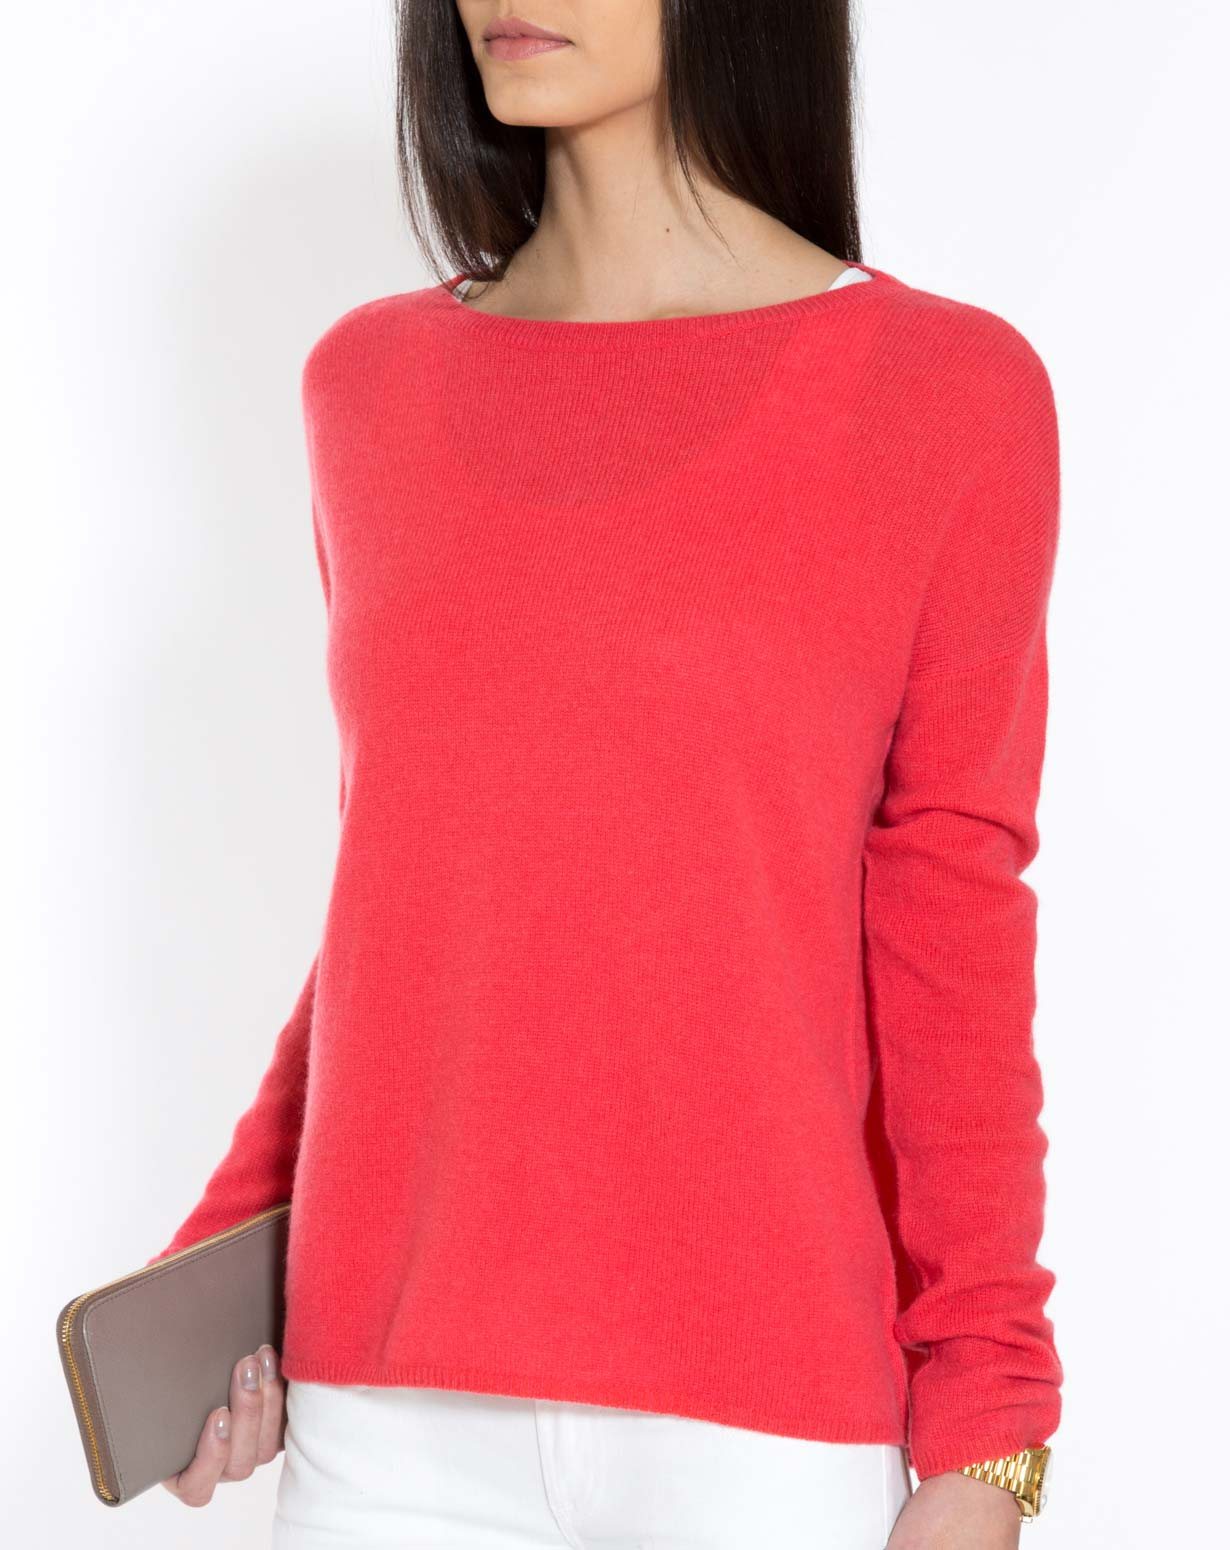 Women's Cashmere Sweaters, Browse the Collection | MaisonCashmere